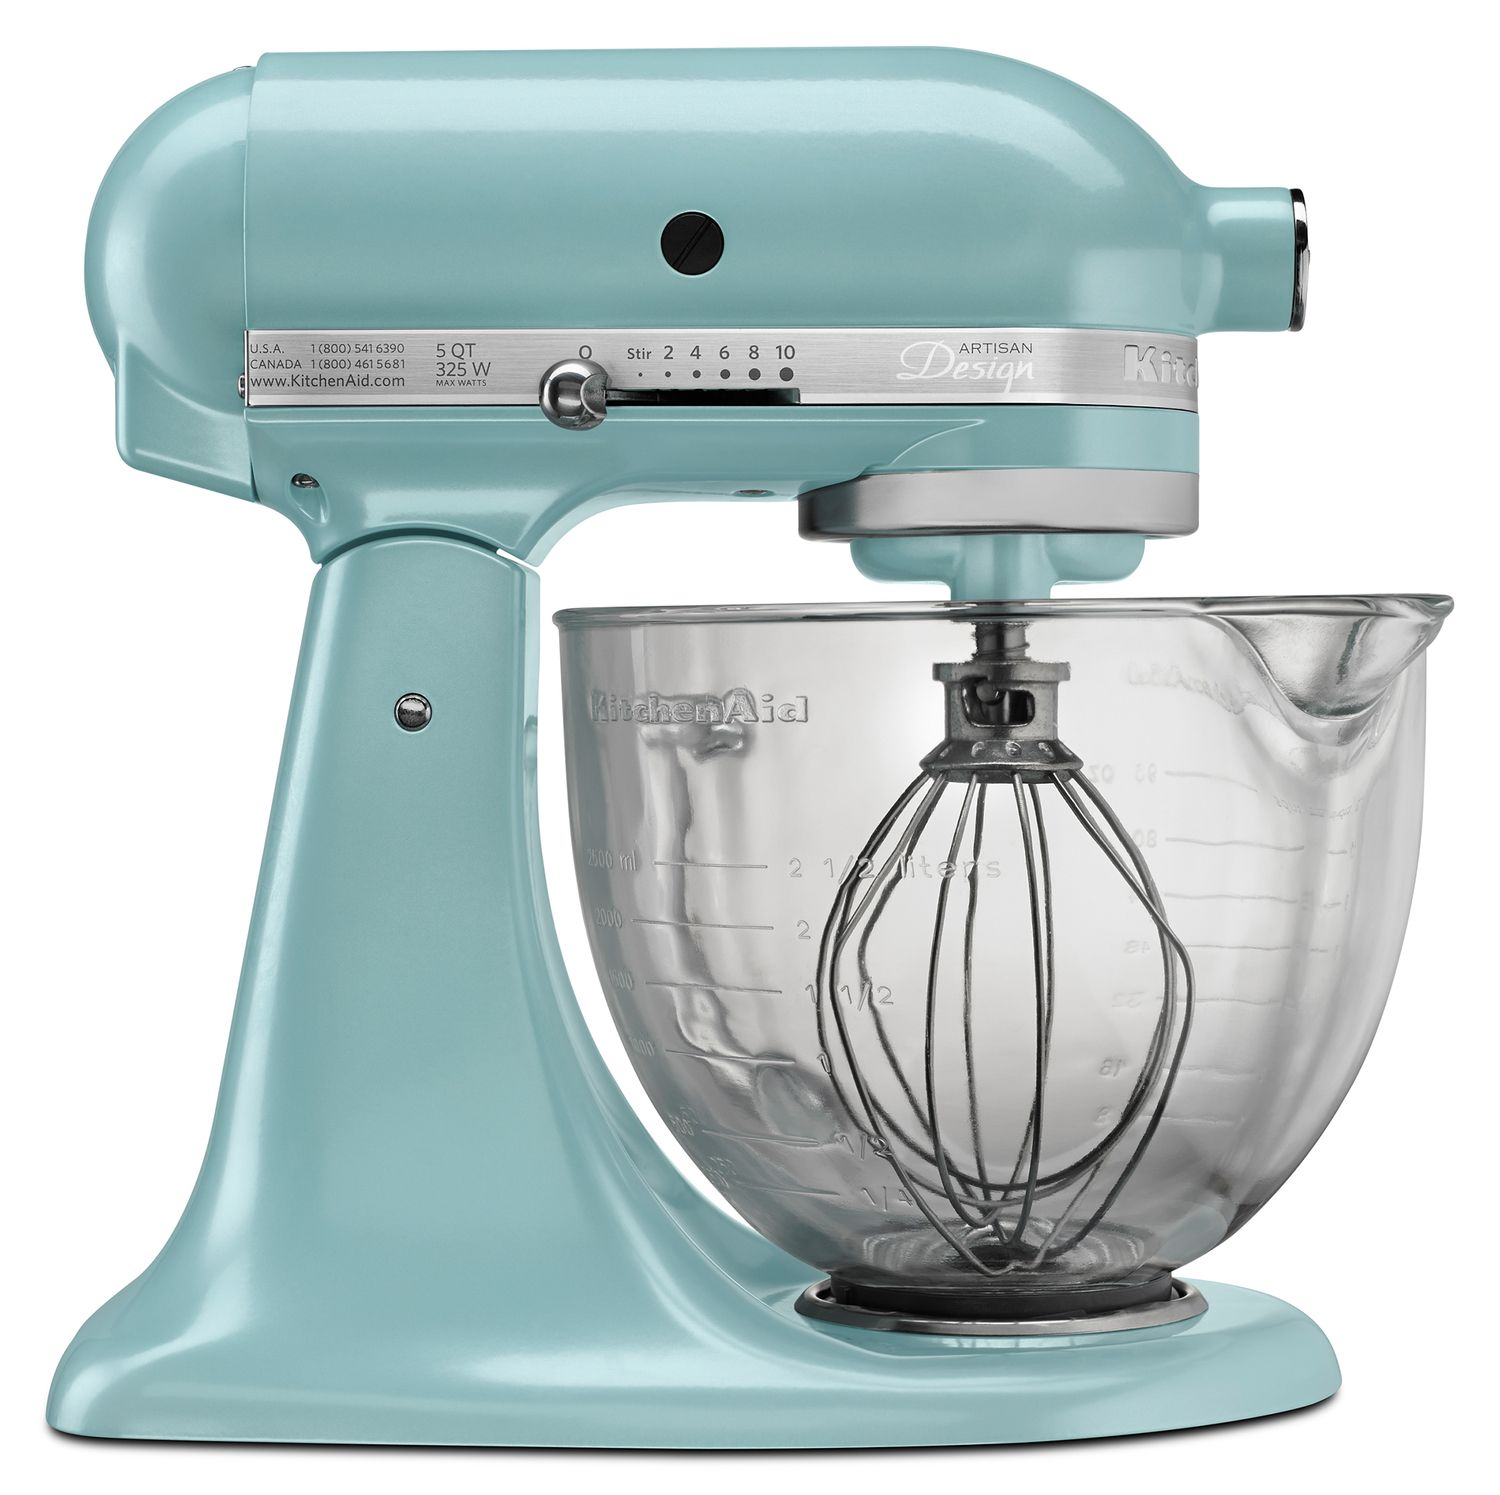 KitchenAid KSM155GB Artisan Design Series 5 Qt. Stand Mixer